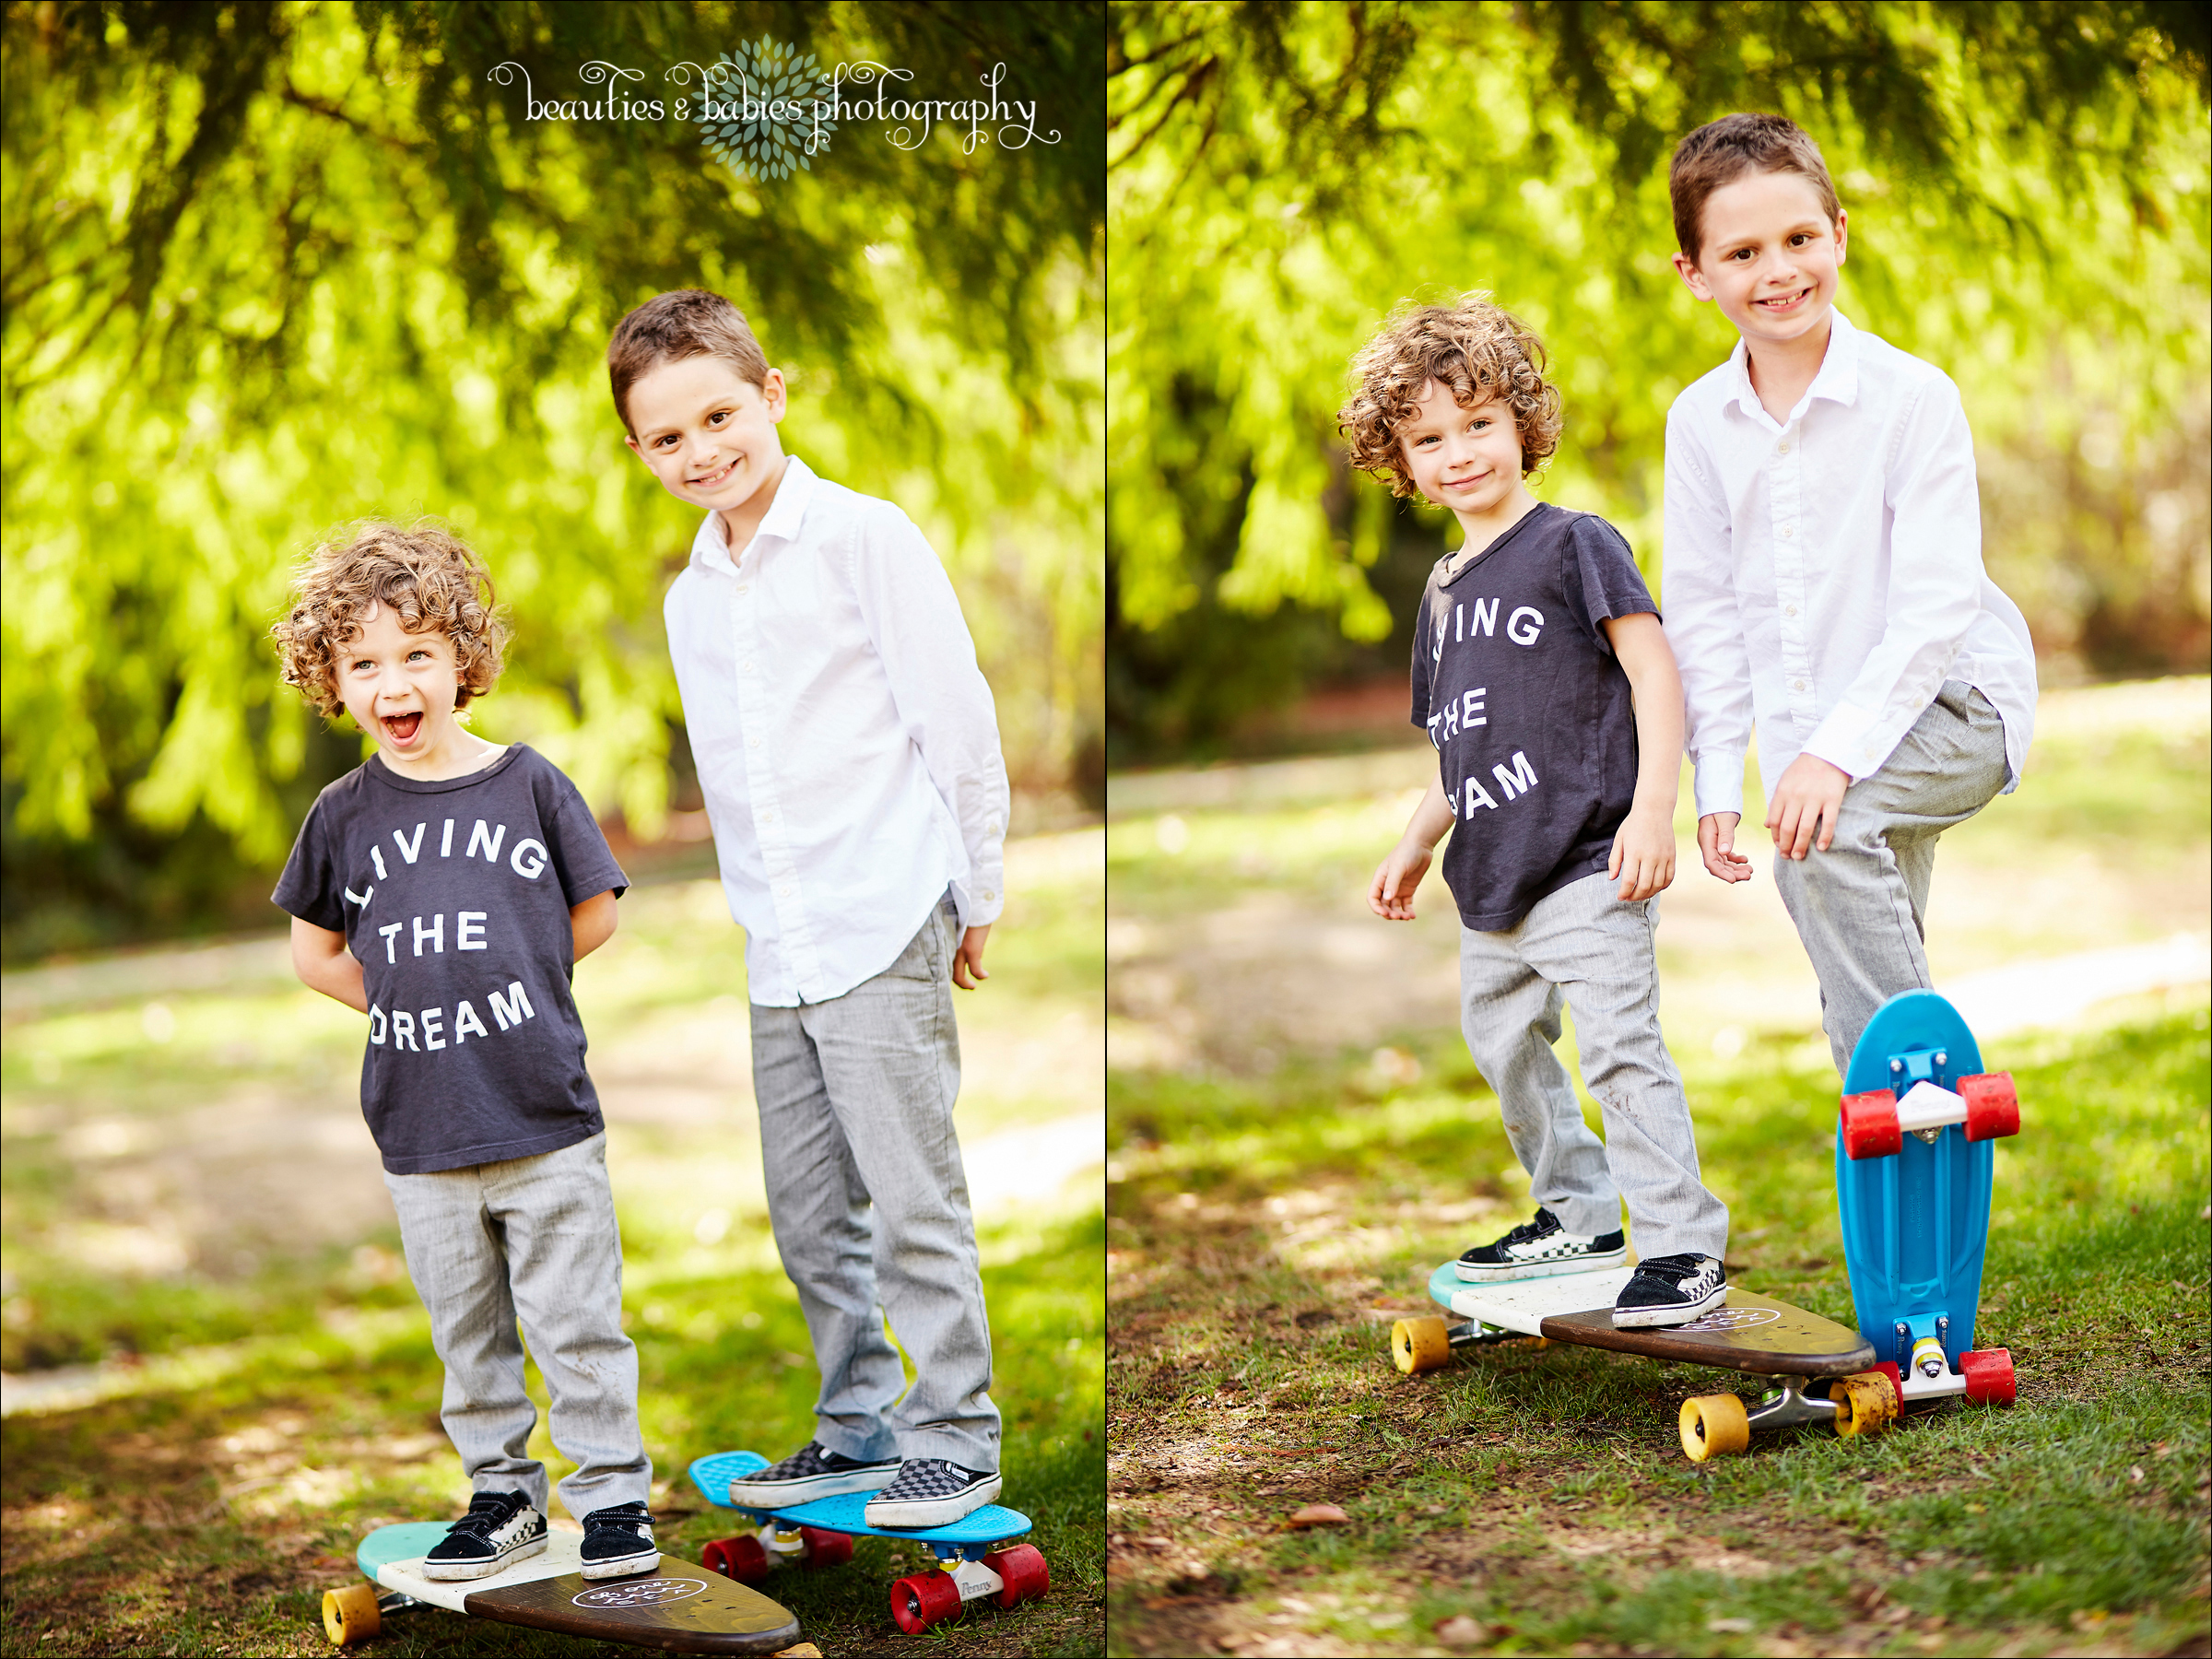 Outdoor family photography holiday mini professional pictures Los Angeles photographer